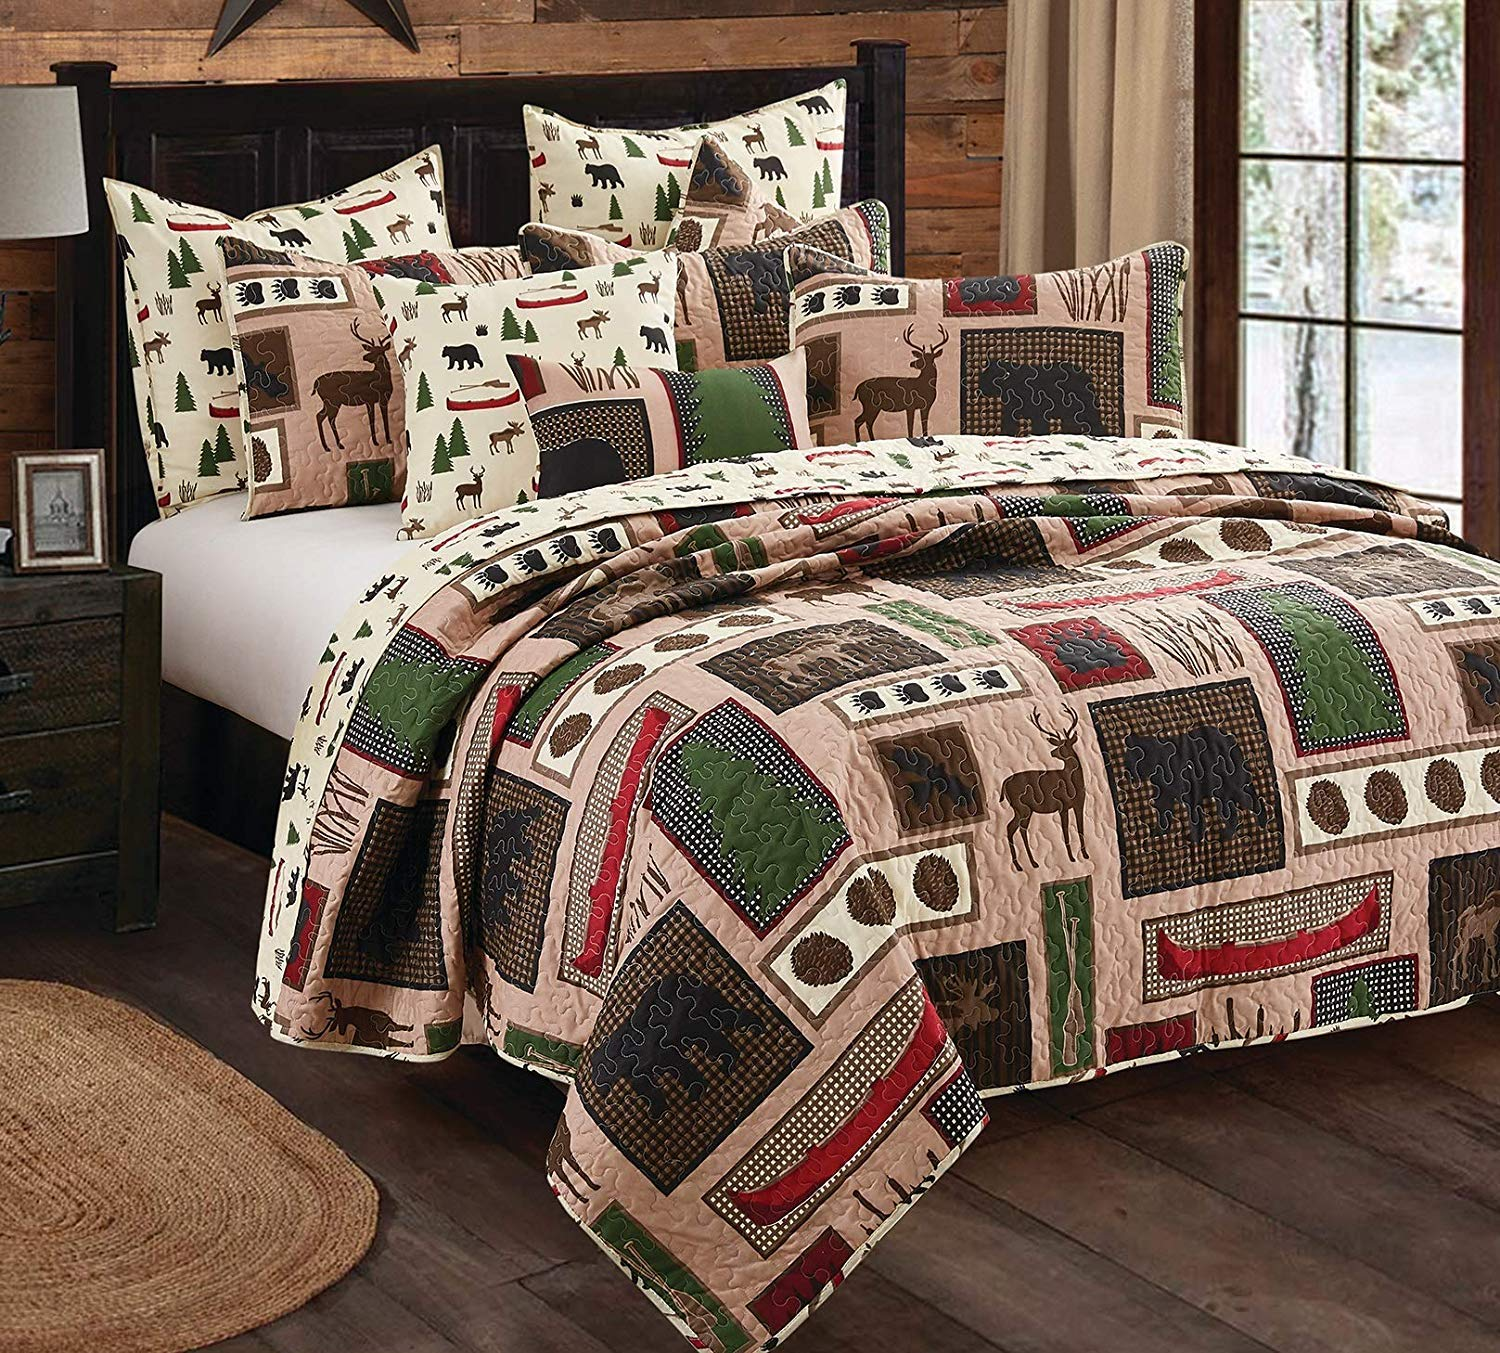 Virah Bella 3 Piece Lake Living Black Bear Moose Cabin Quilt Set (Queen/Full)